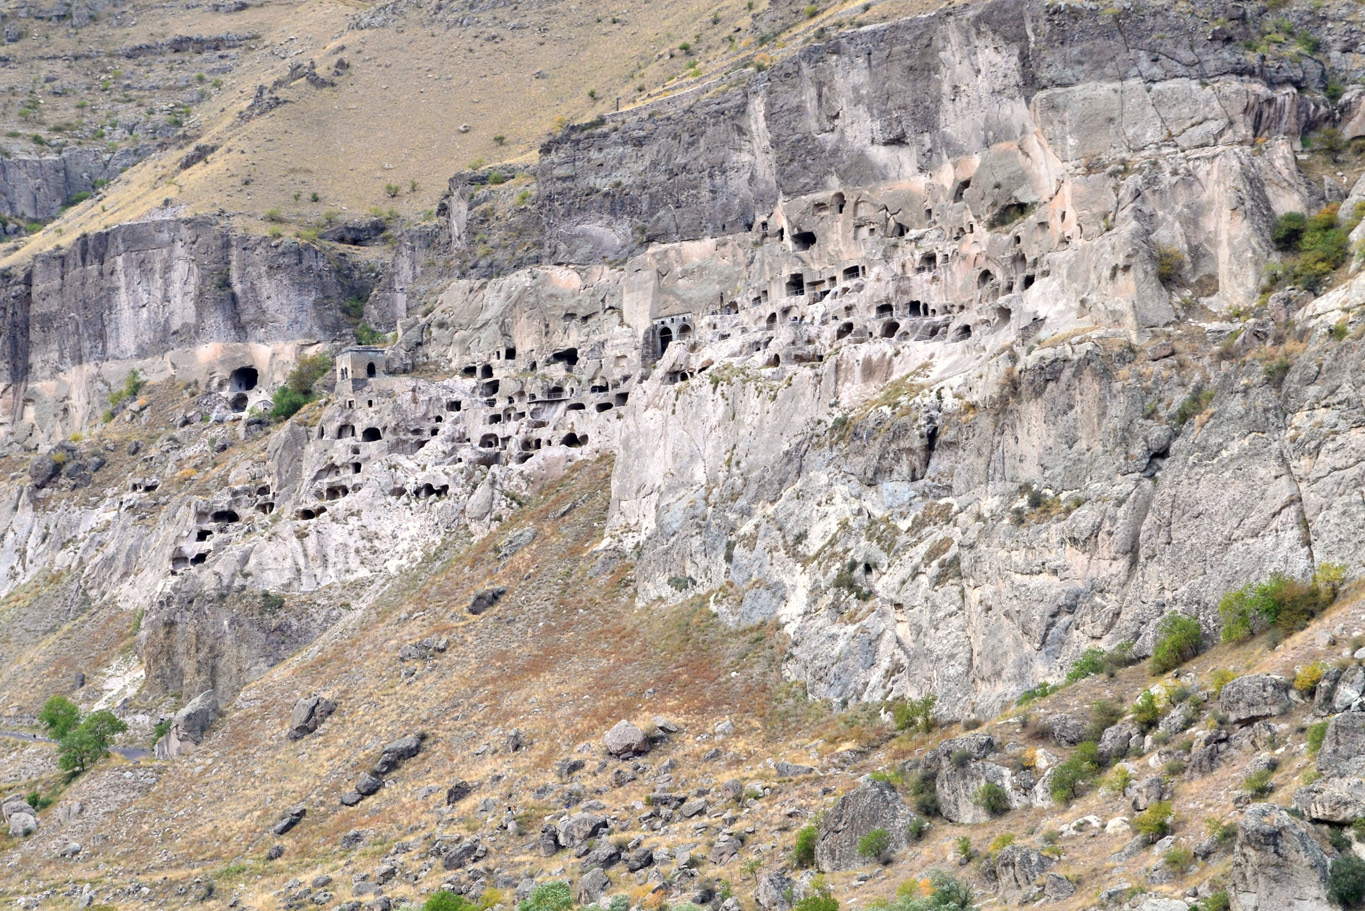 The cliff wall - The view of the whole cave monastery